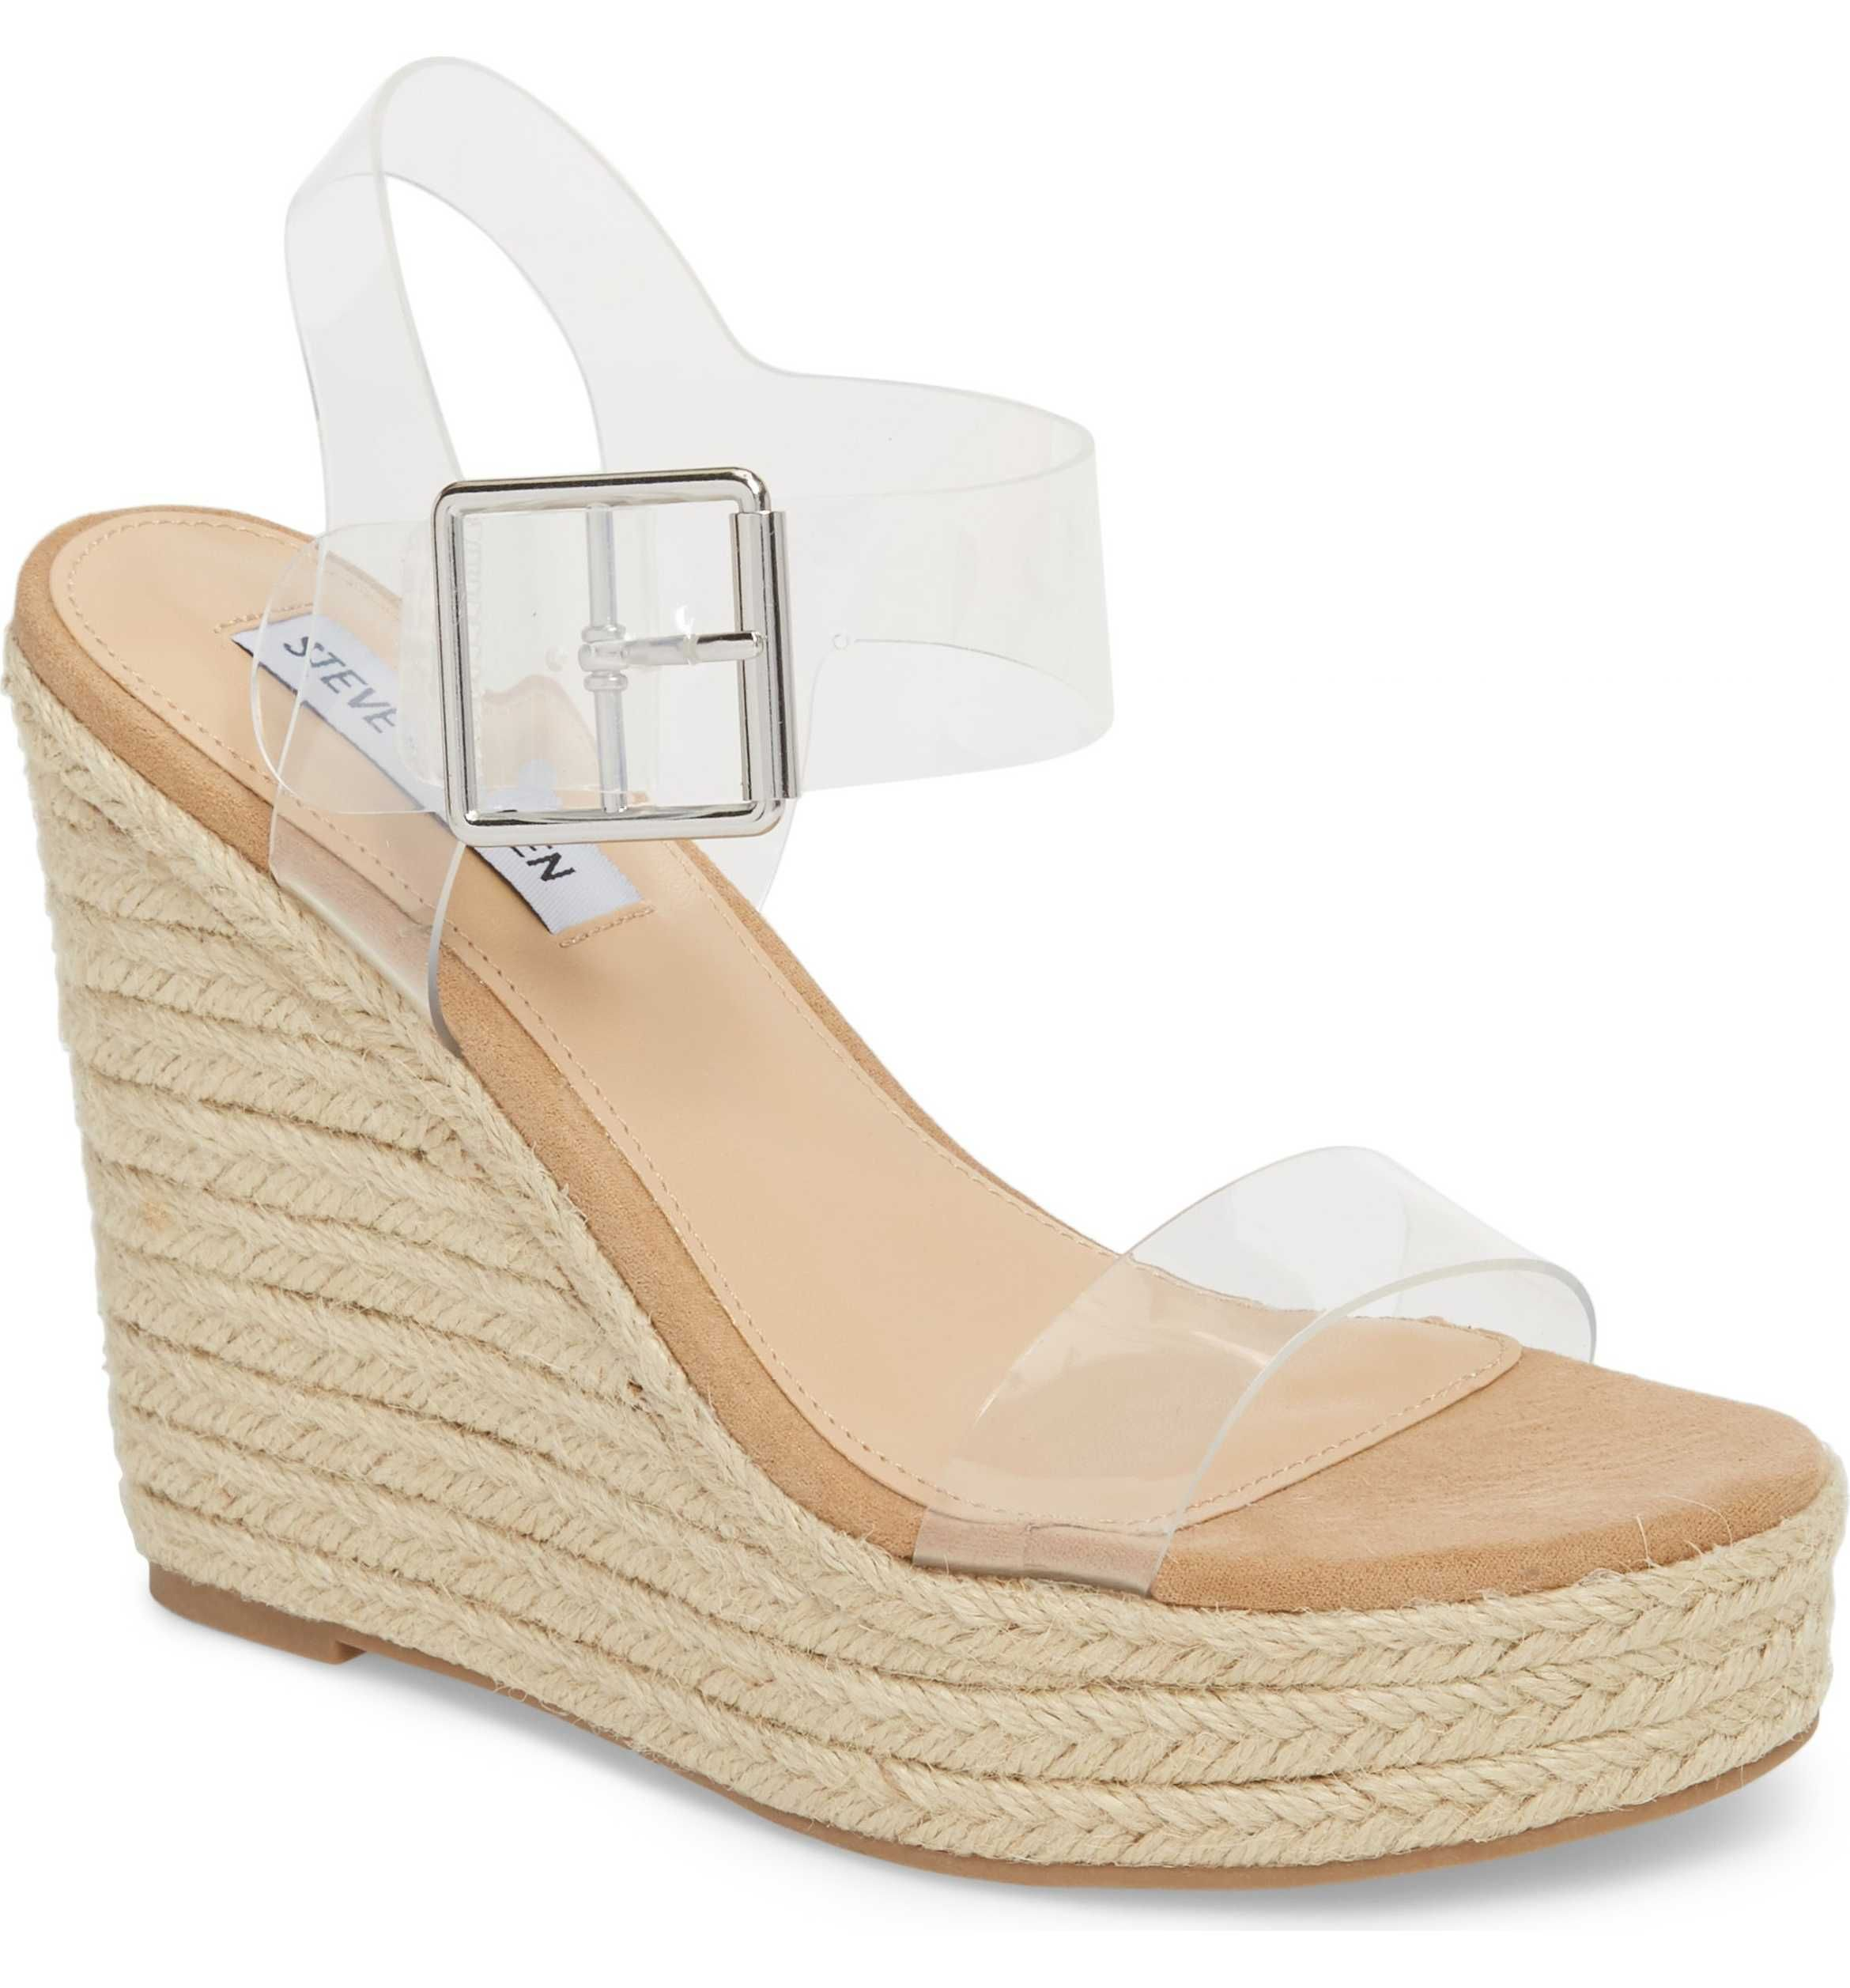 680c129fca Free shipping and returns on Steve Madden Splash Transparent Strap Wedge  Sandal (Women) at Nordstrom.com. Clear upper straps further the breezy, ...